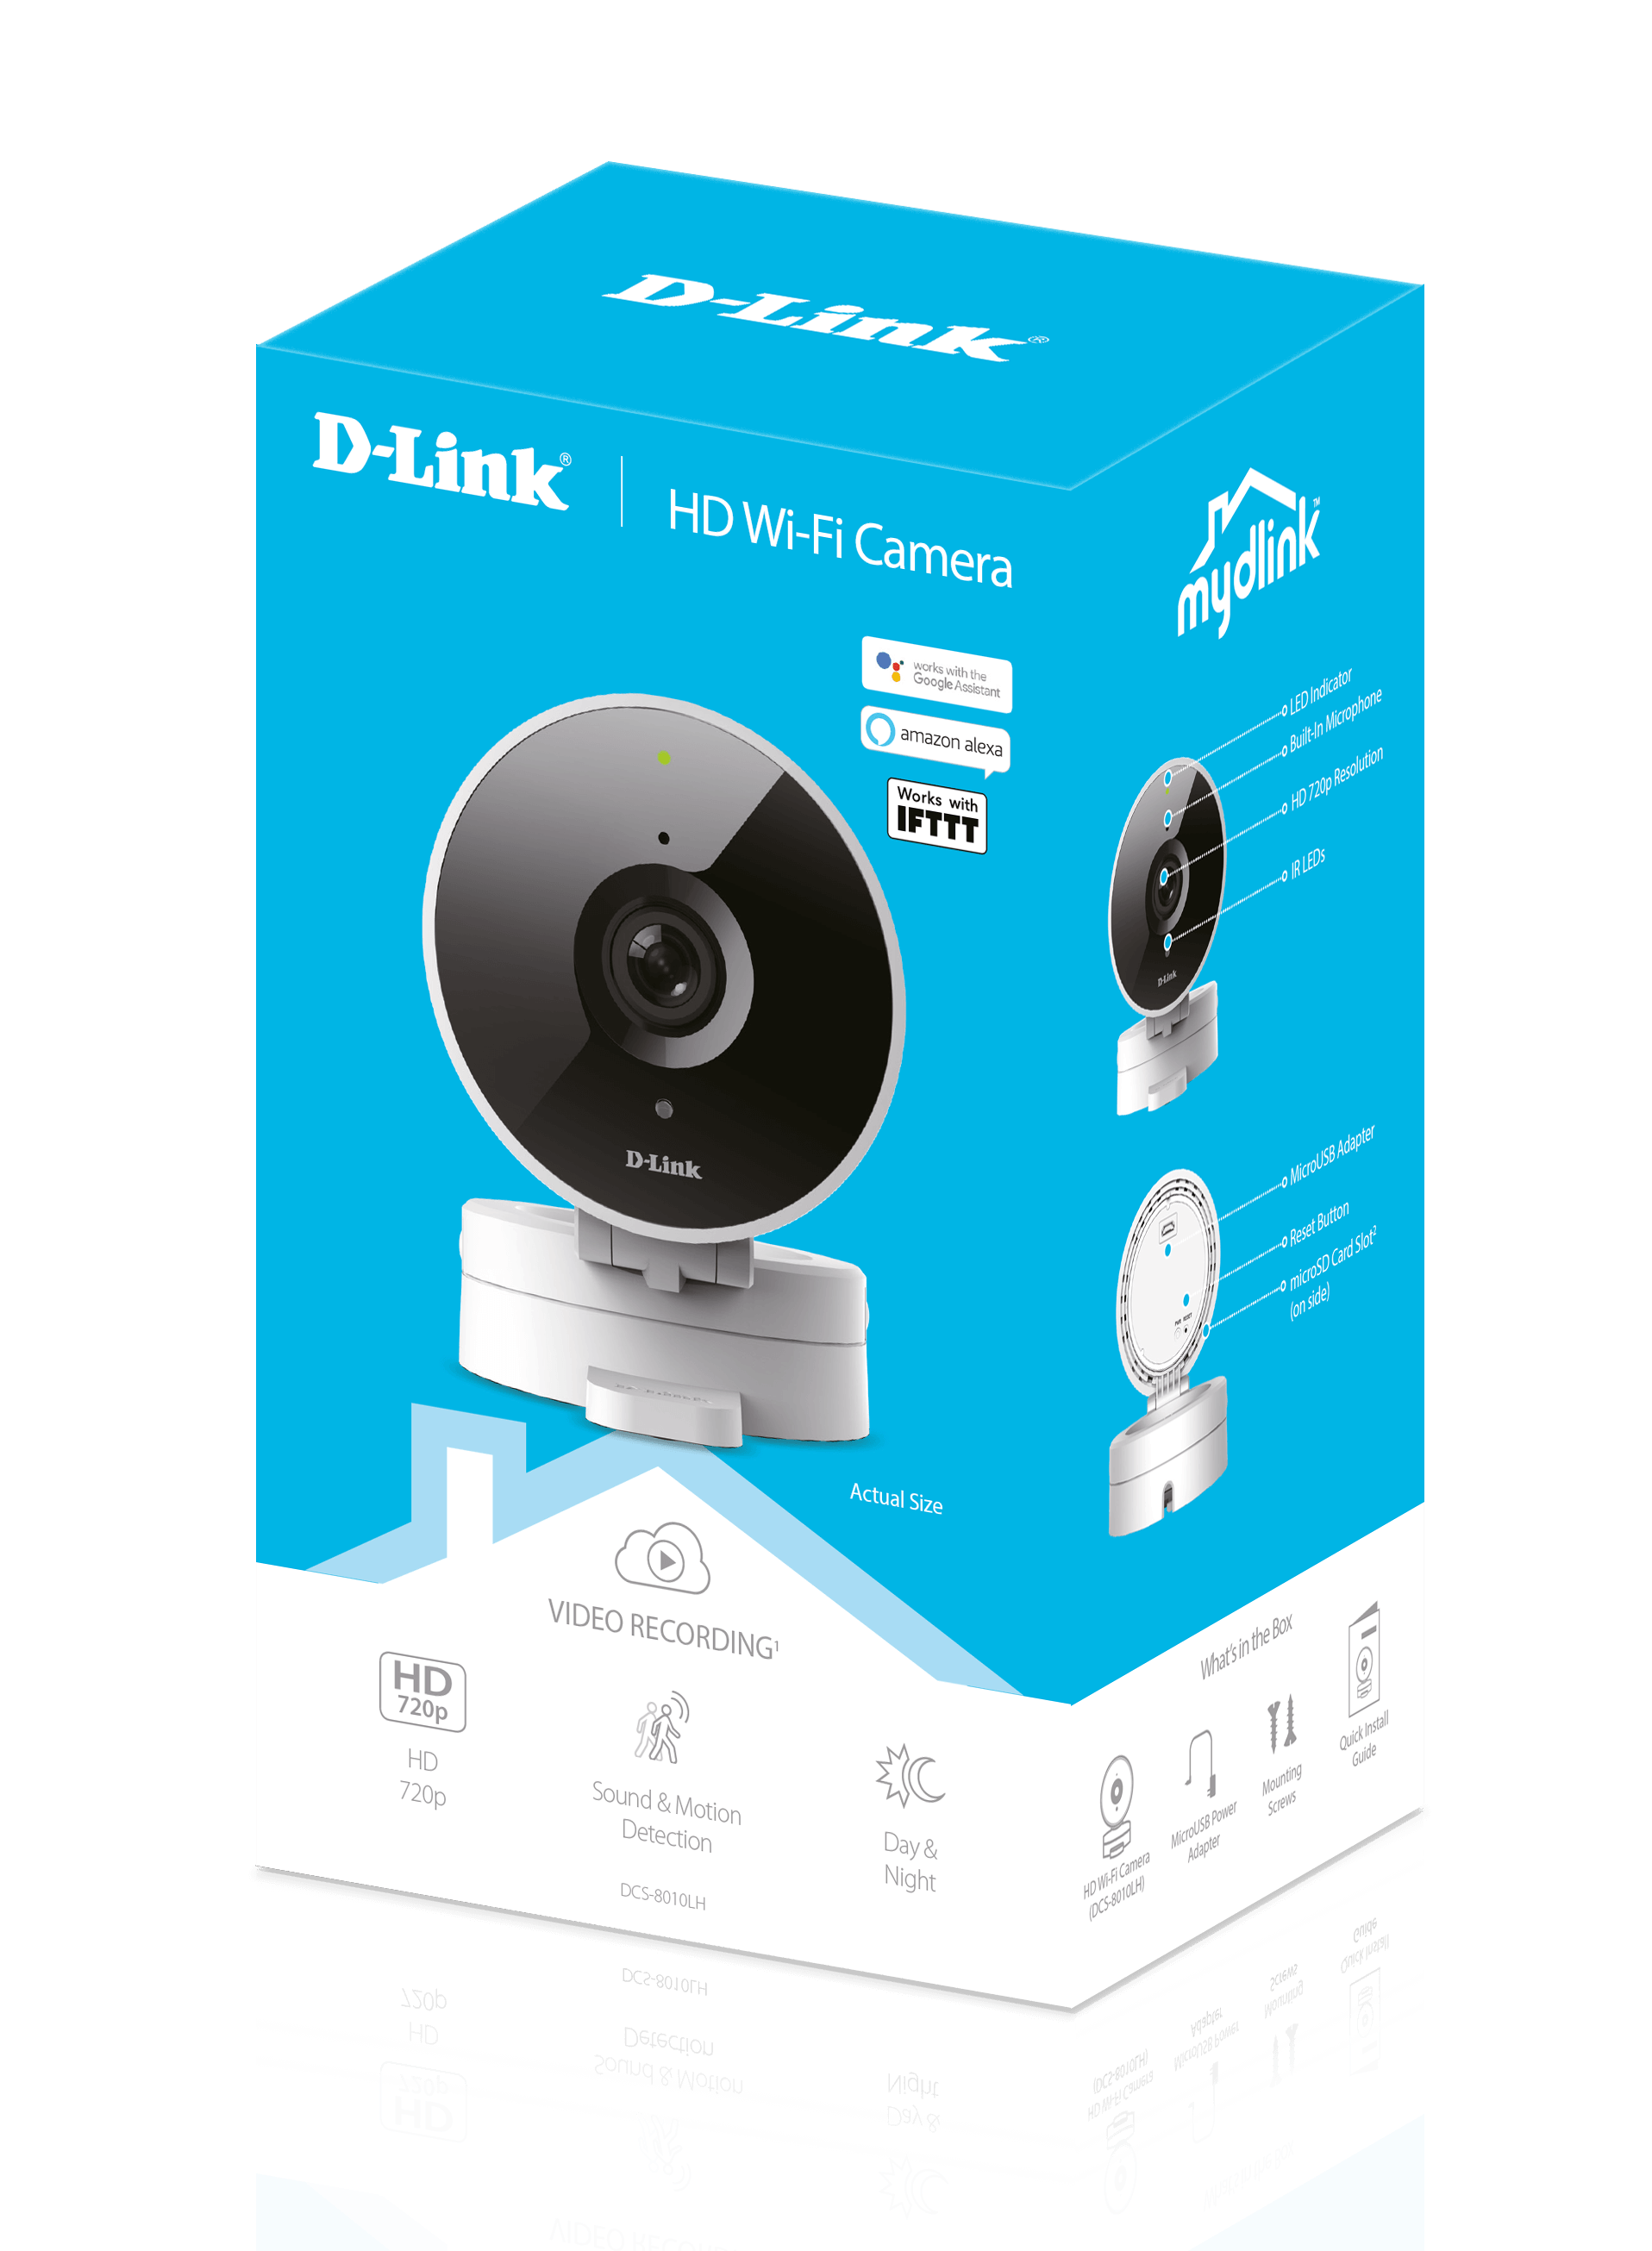 Box of the DCS-8010LH mydlink HD Wi-Fi Camera